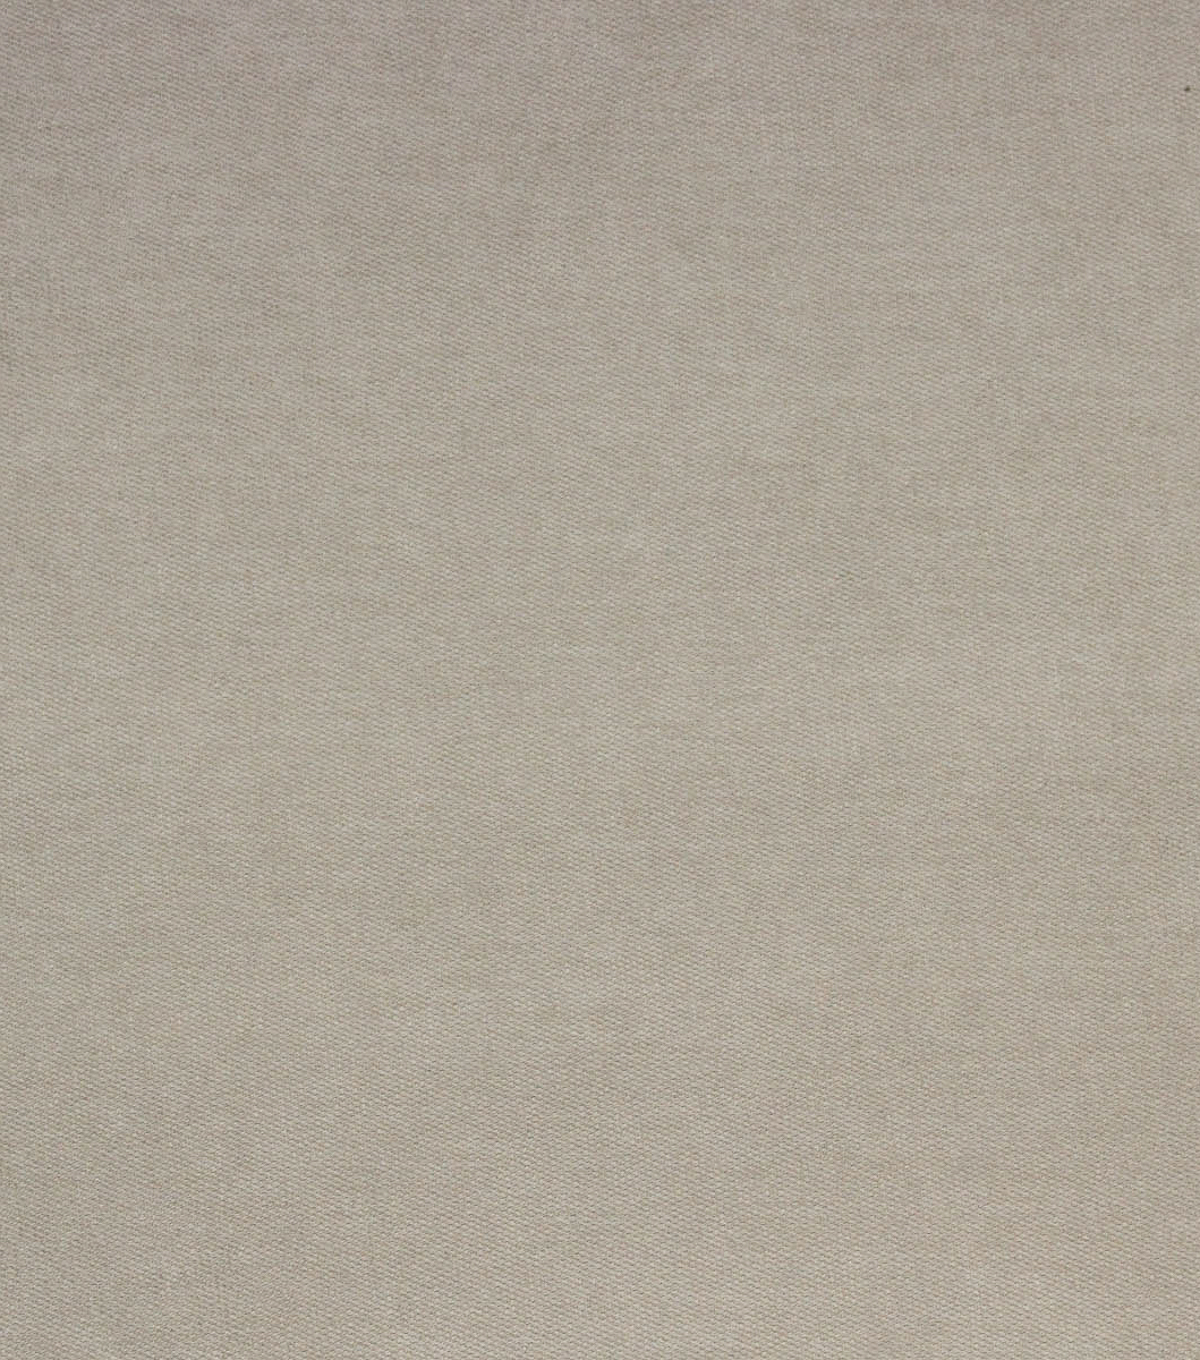 Richloom Studio Multi-Purpose Decor Fabric 55\u0022-Geyser/Linen